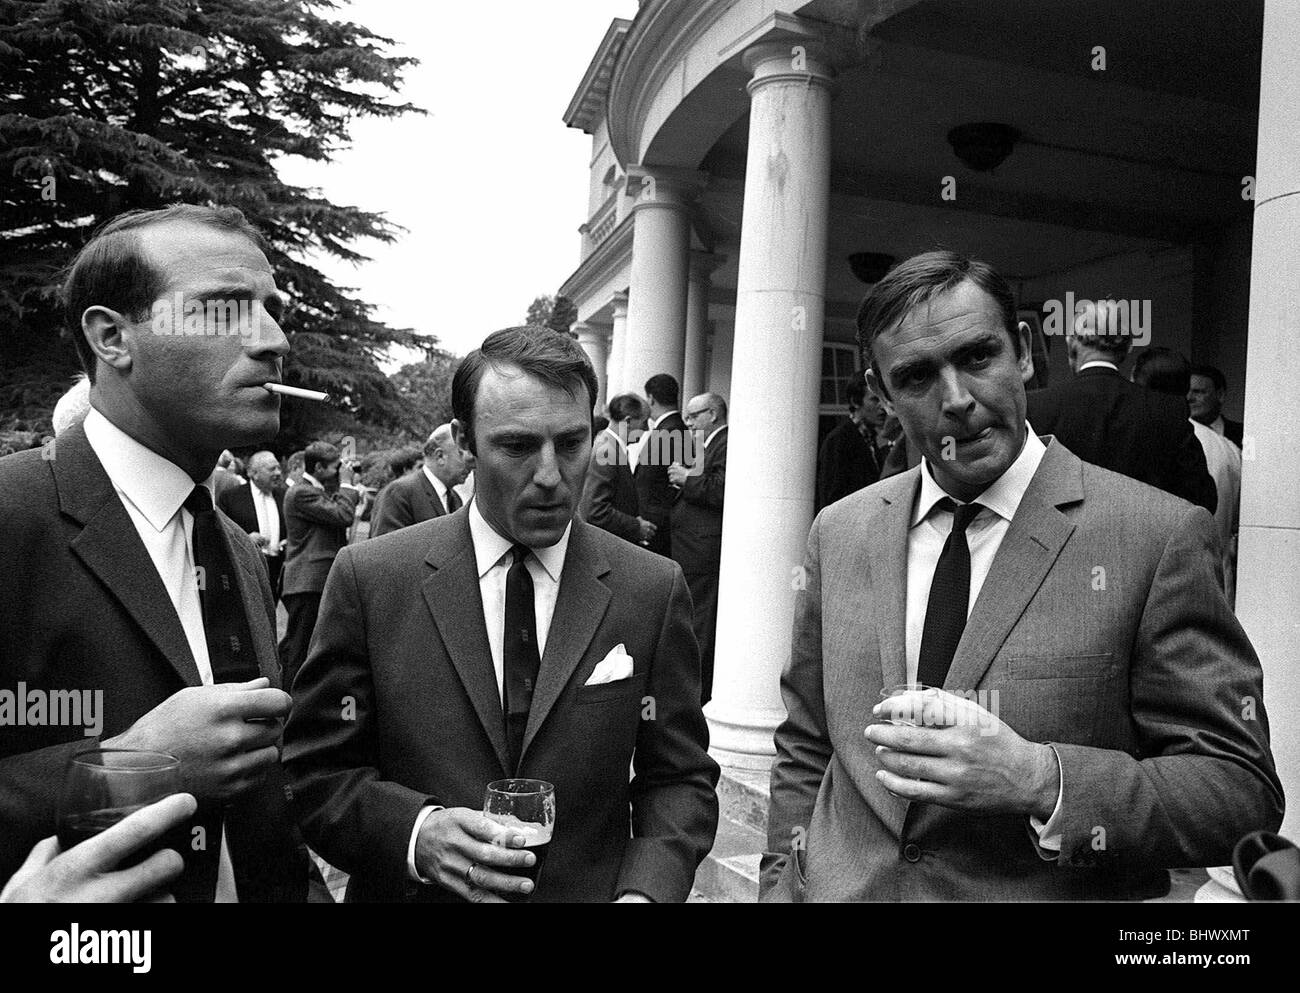 Jimmy Greave along with members of the England World Cup team meet Sean Connery during a visit to Pinewood film - Stock Image